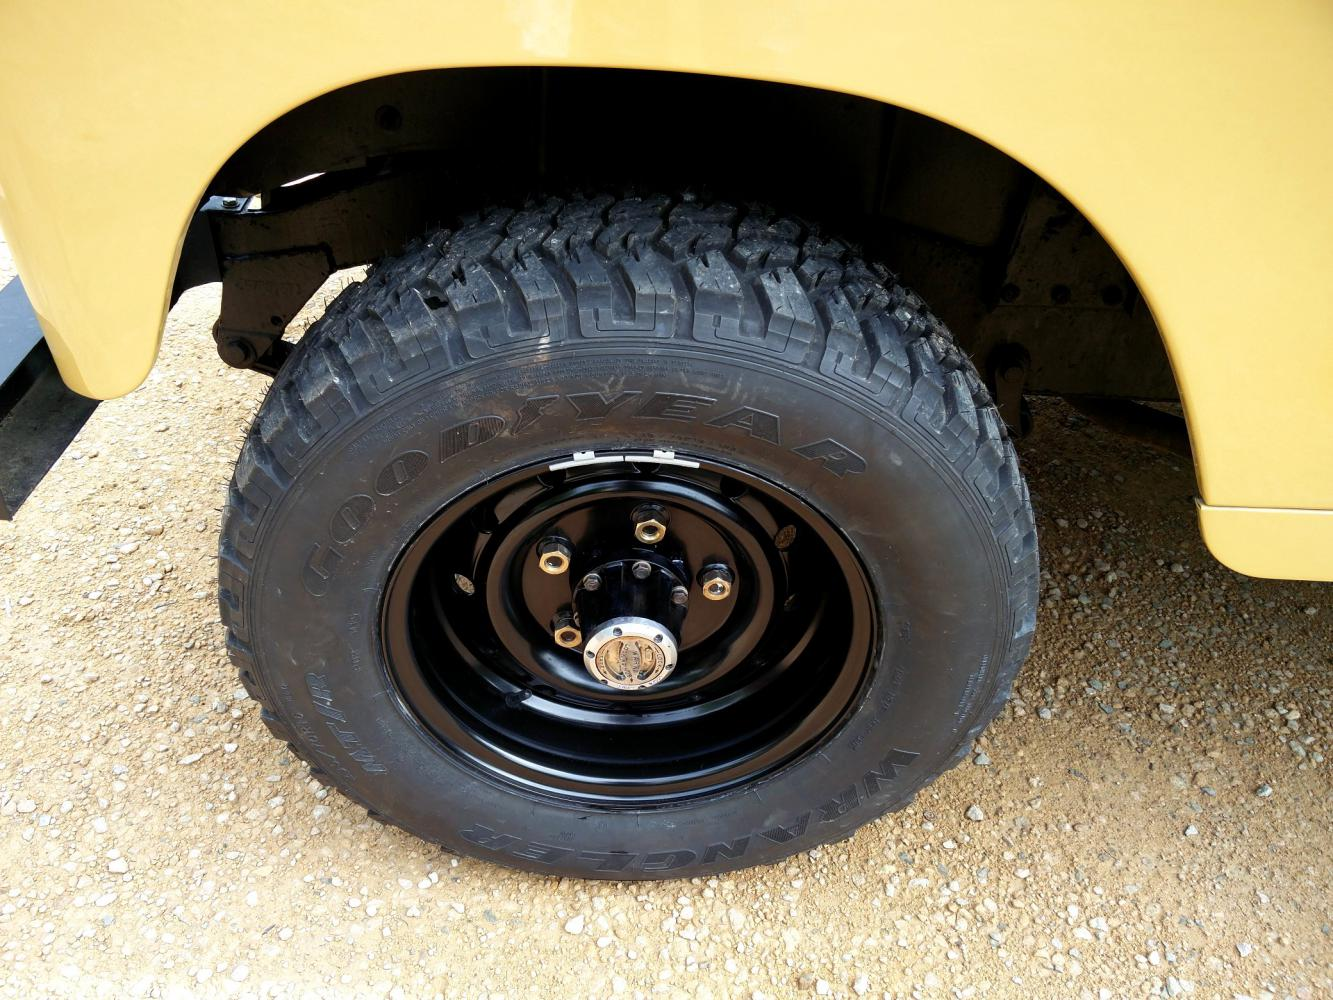 Click image for larger version  Name:1978 LR LHD Santana 88 Hardtop A Mustard Yellow  new rims with tyres.jpg Views:50 Size:215.1 KB ID:296609